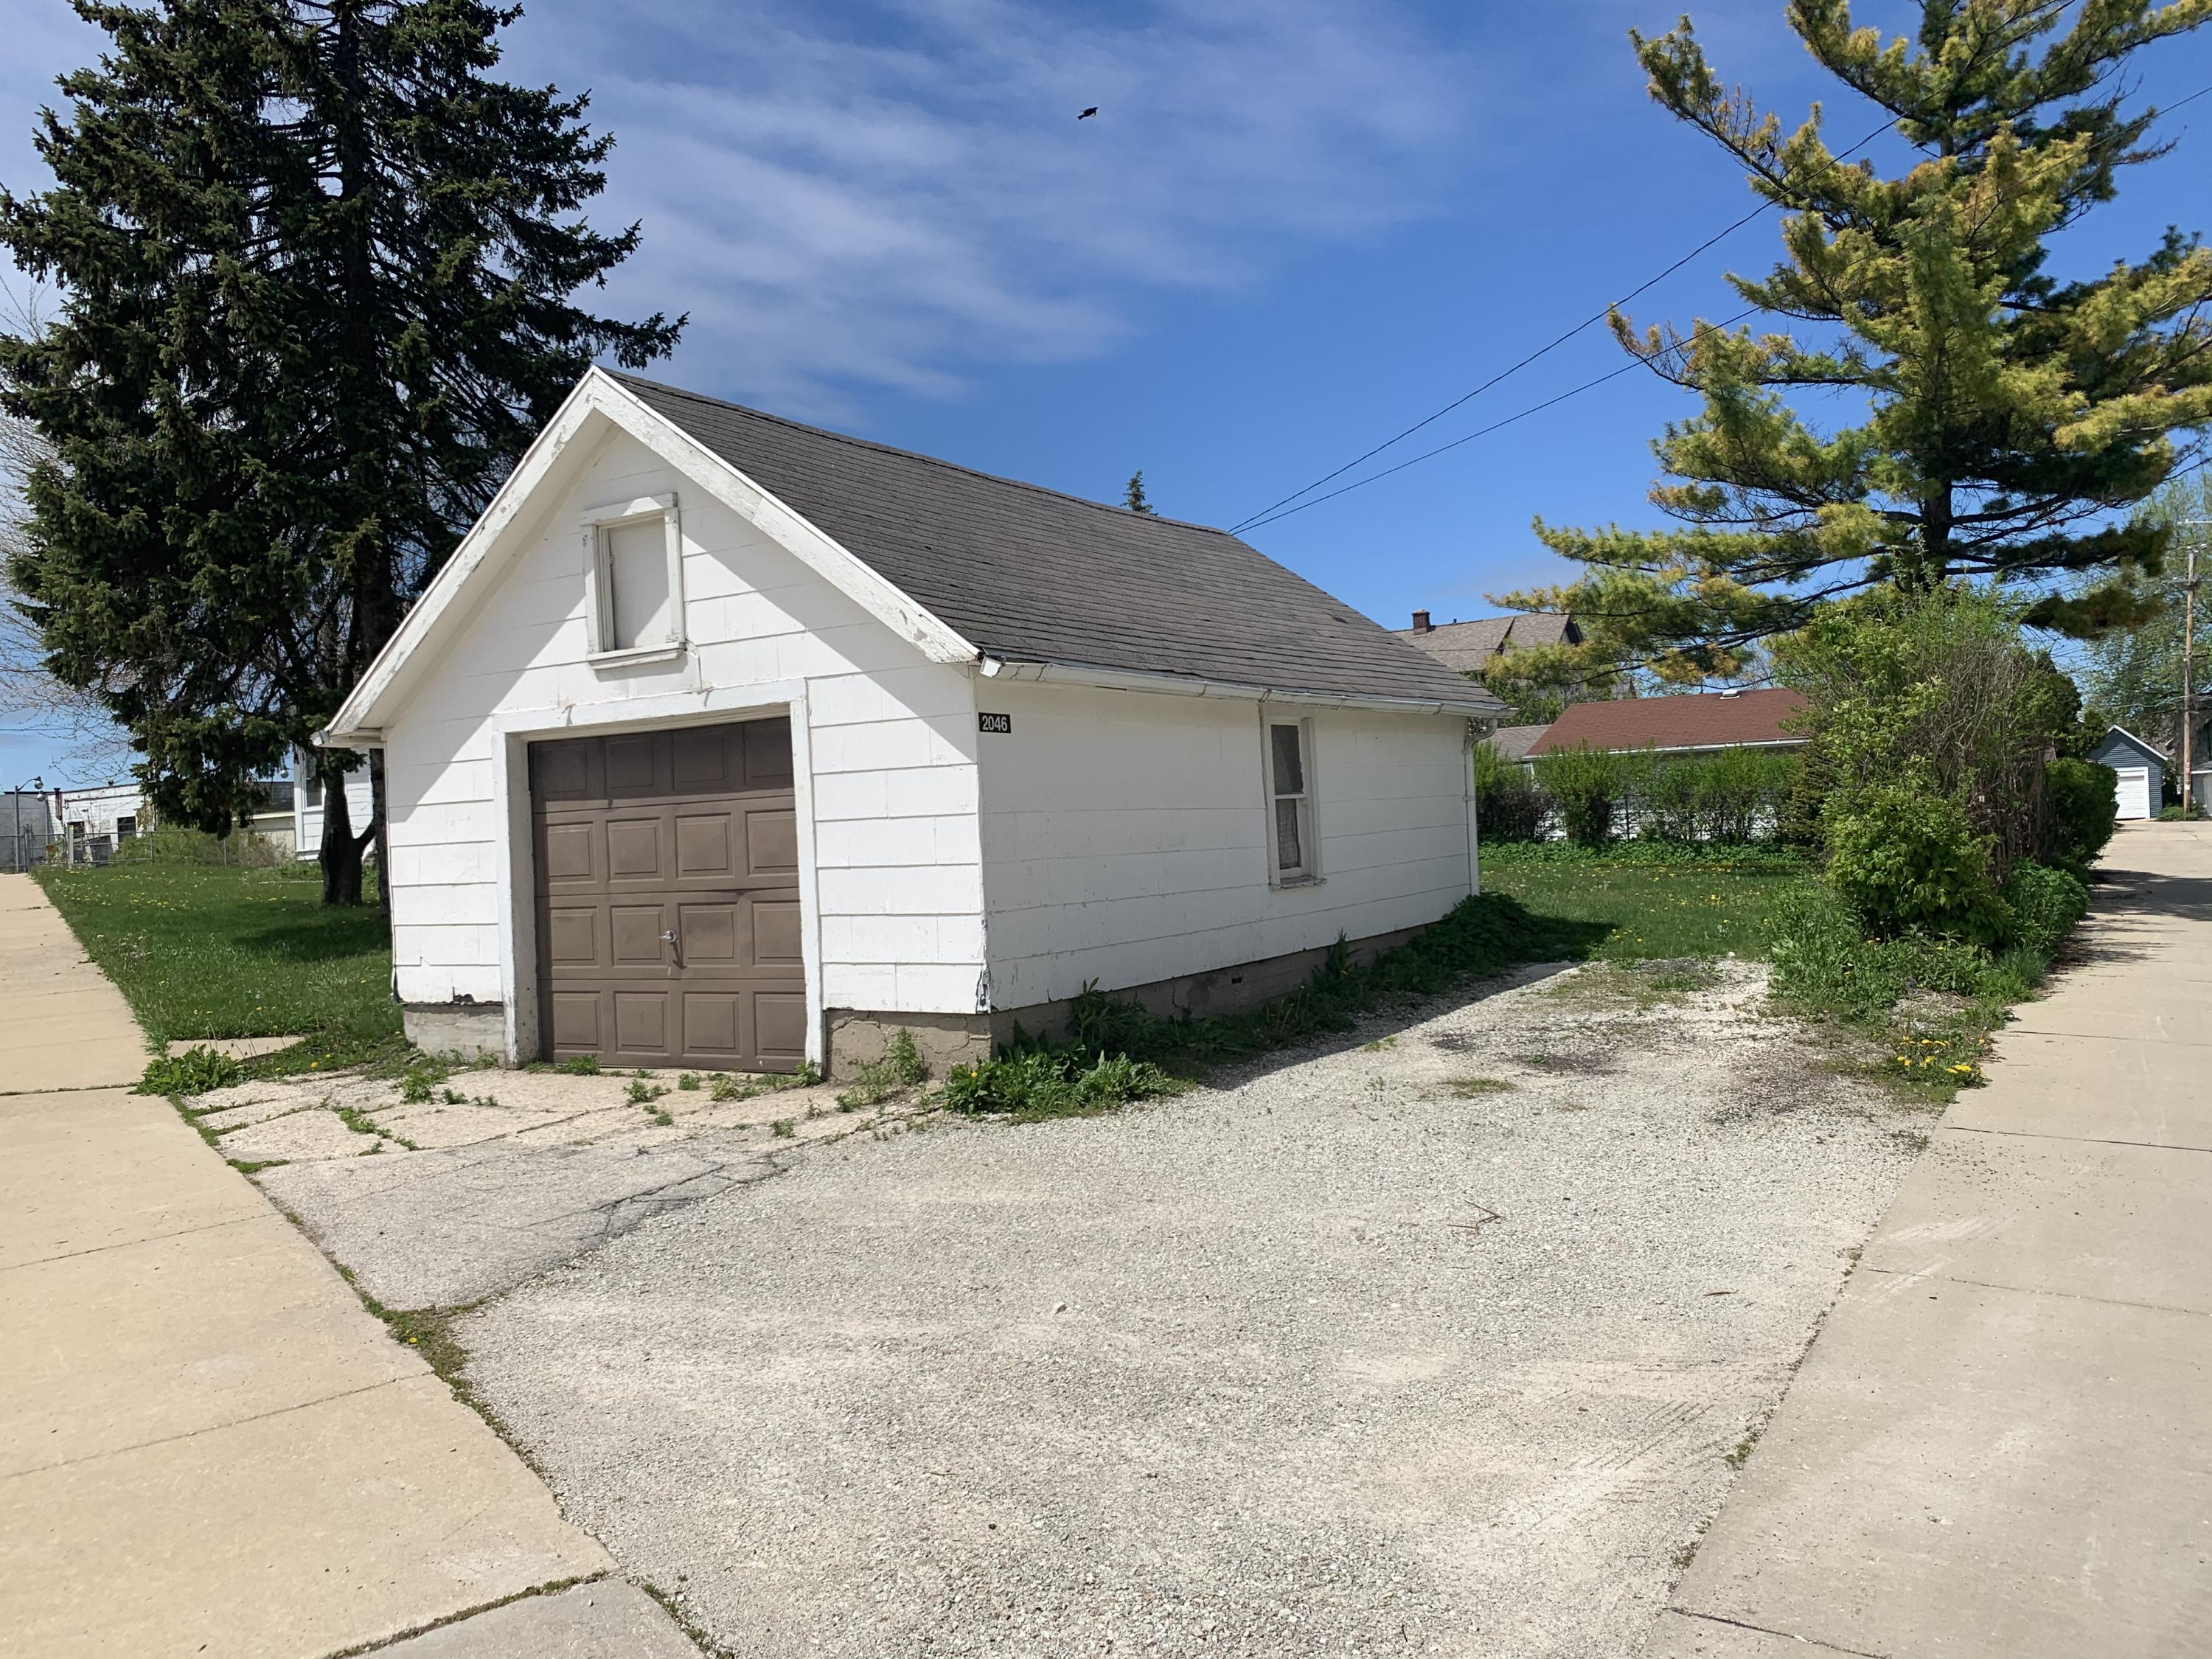 2046 60th St, West Allis, Wisconsin 53219, 3 Bedrooms Bedrooms, 6 Rooms Rooms,1 BathroomBathrooms,Single-Family,For Sale,60th St,1690381